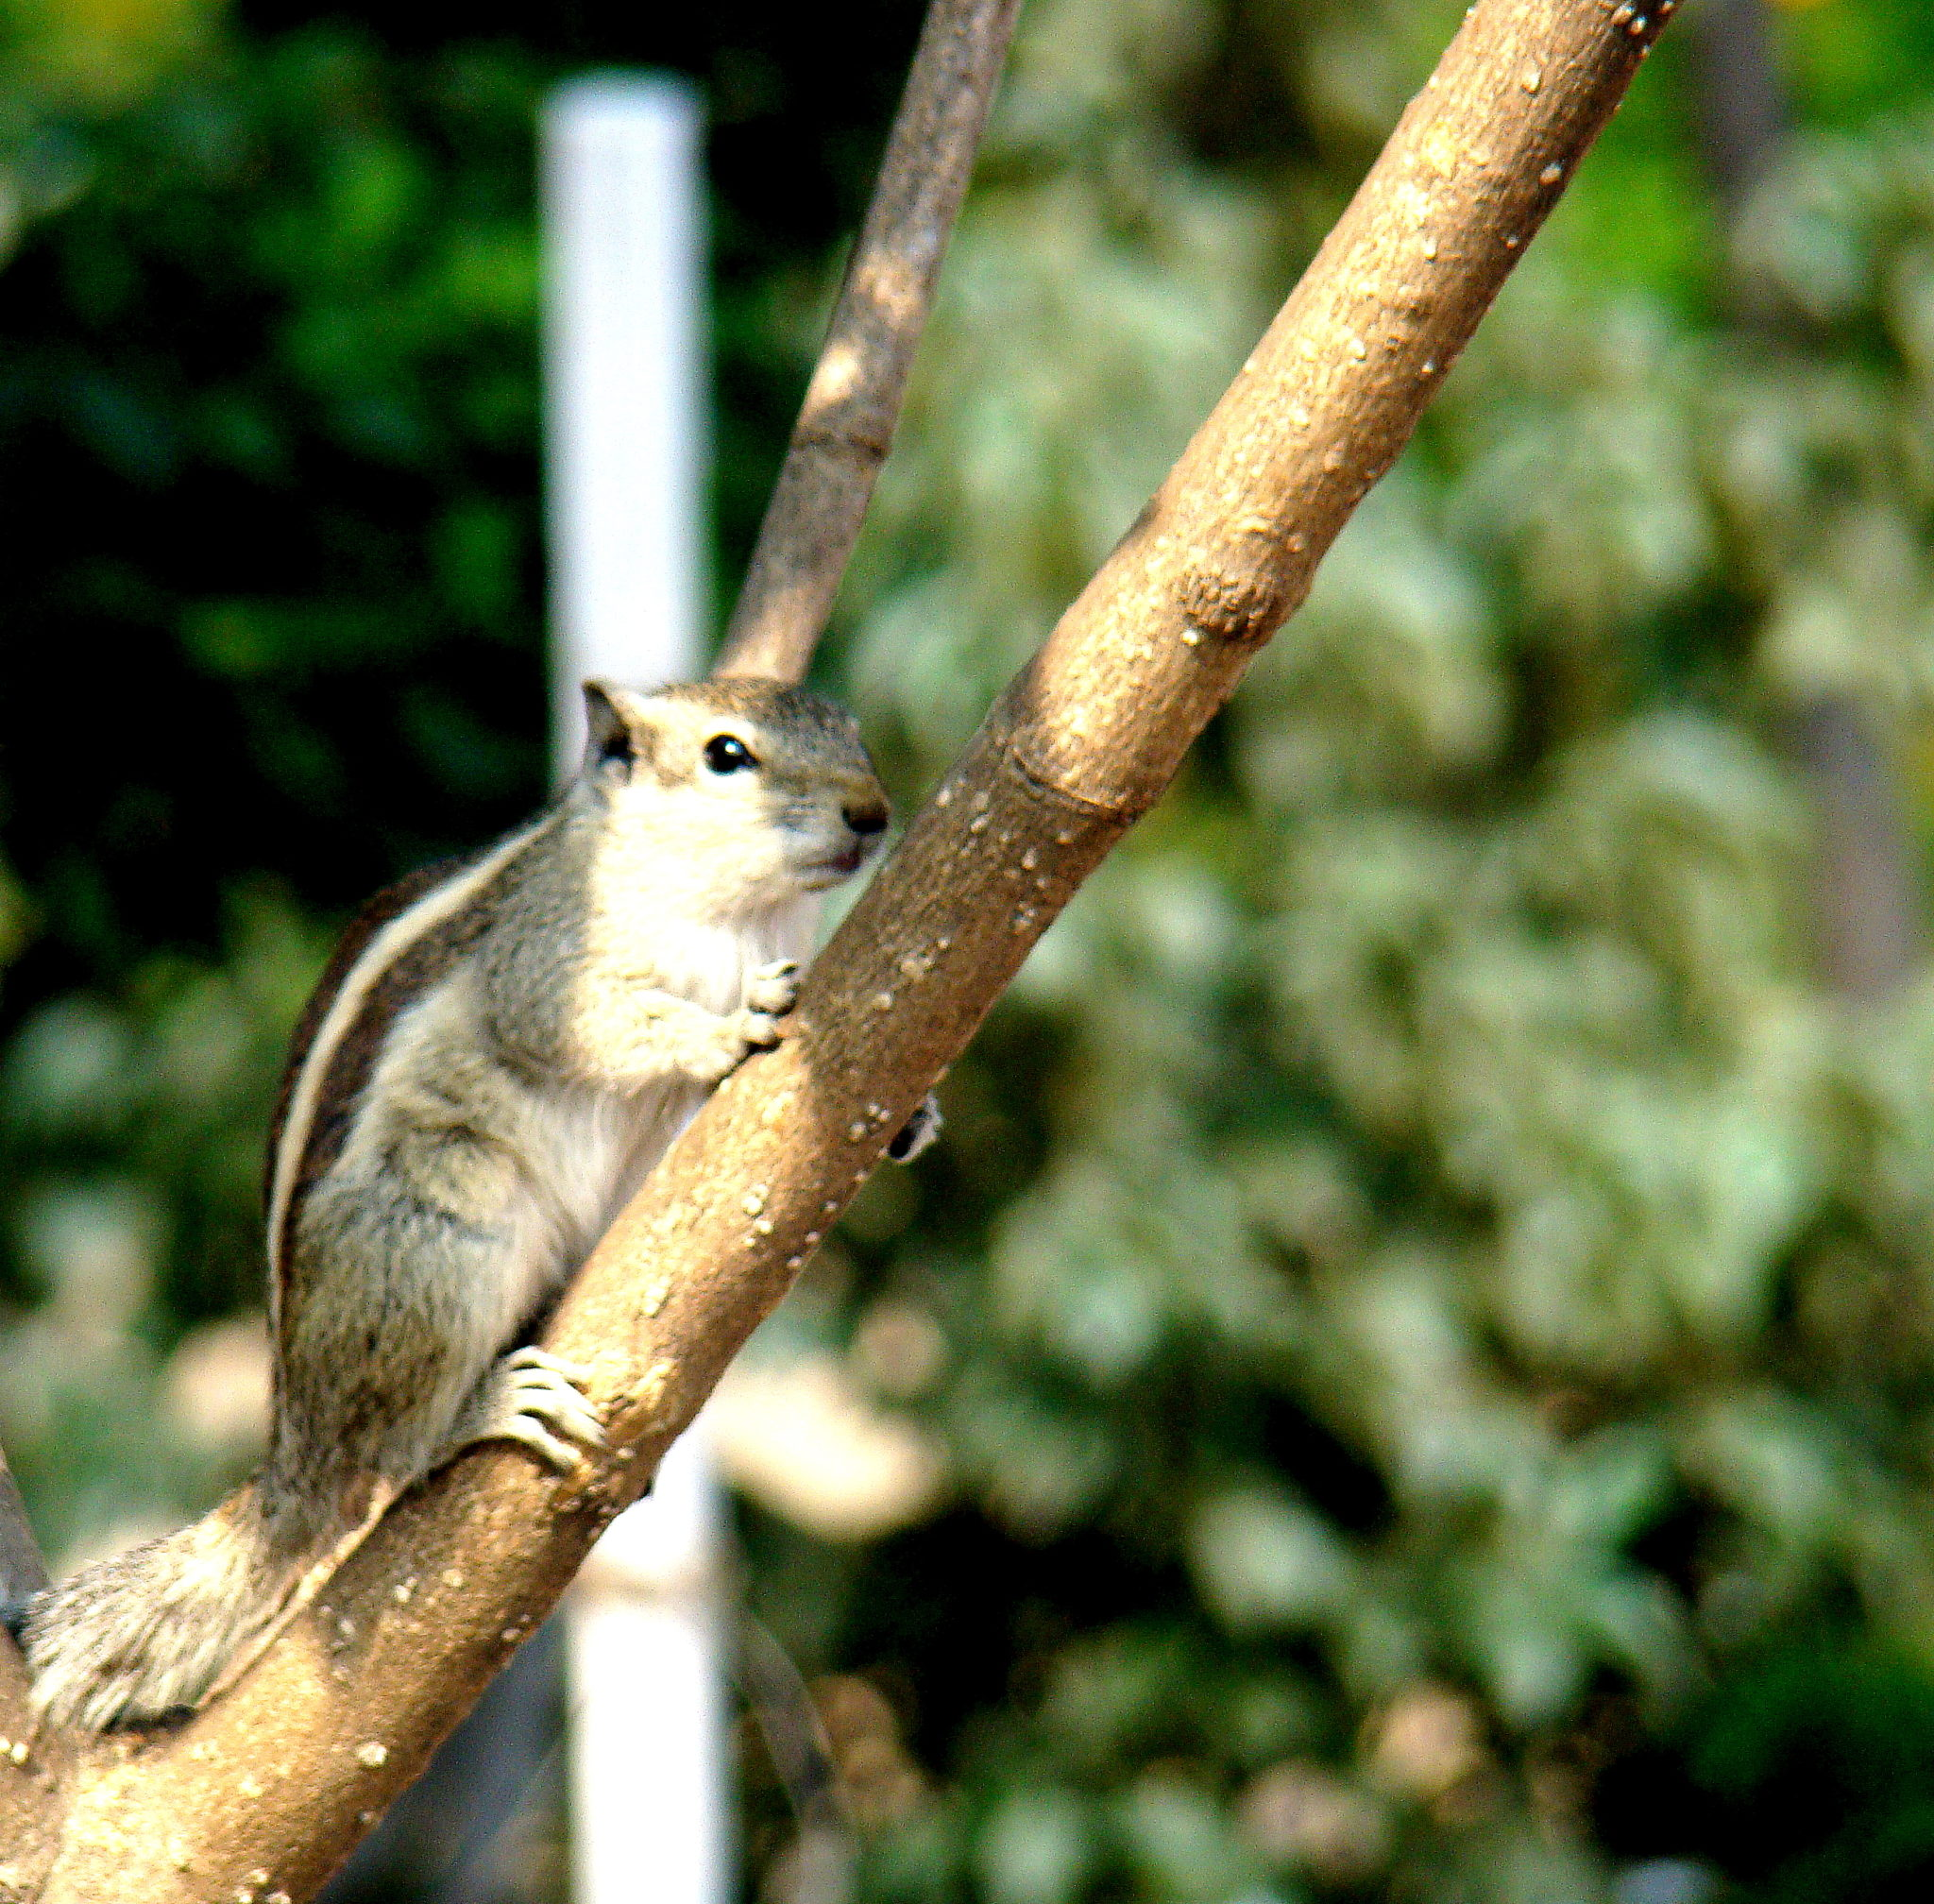 a squirrel at the resort